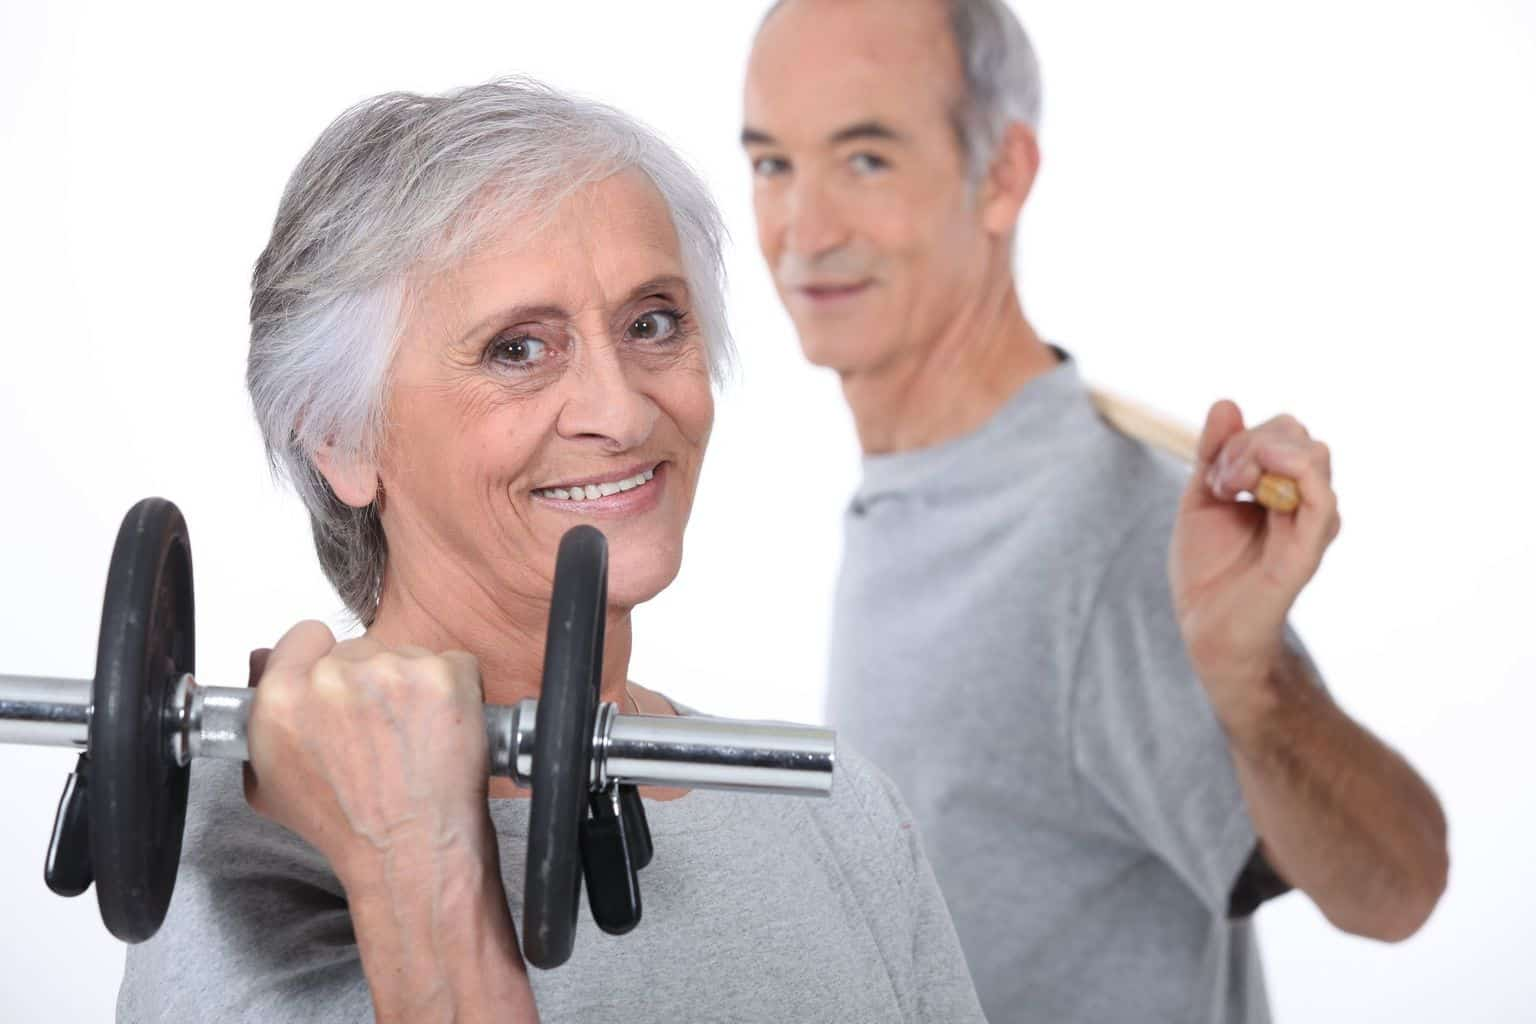 The easiest way to live longer and healthy